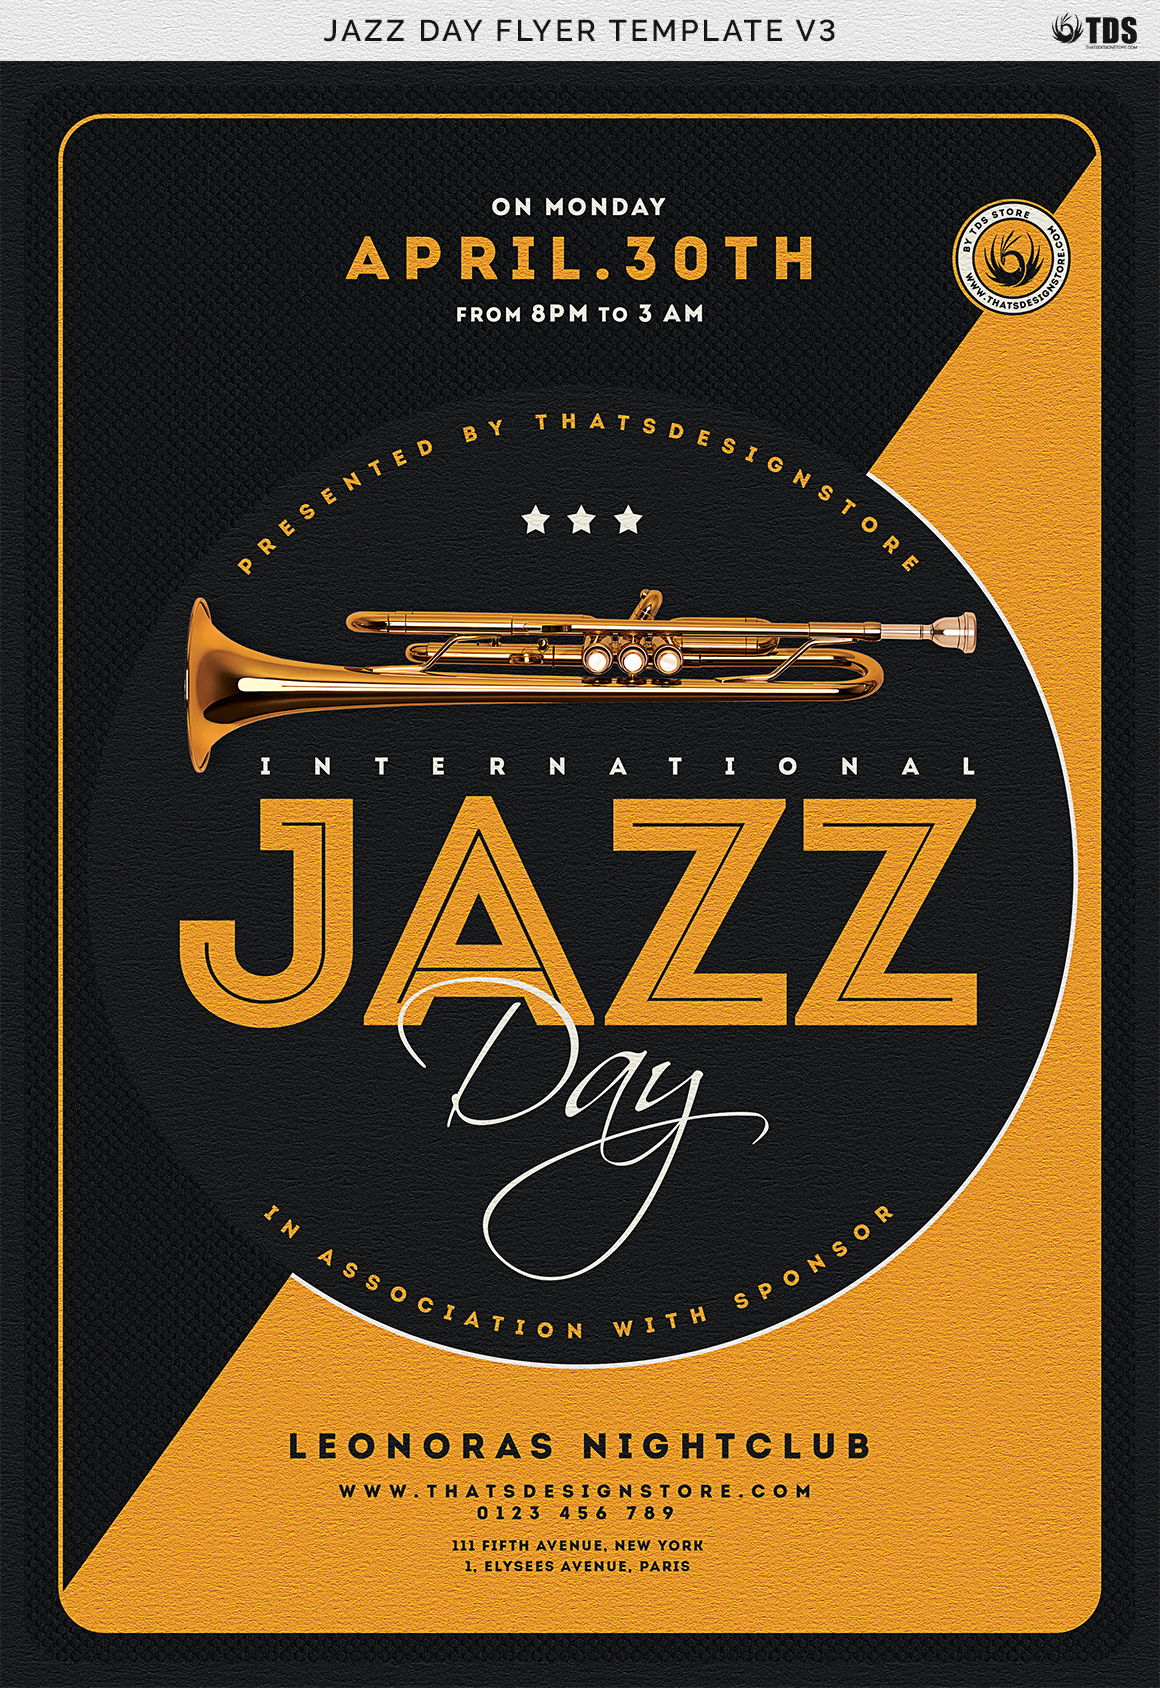 Jazz Day Flyer Template V3 example image 7